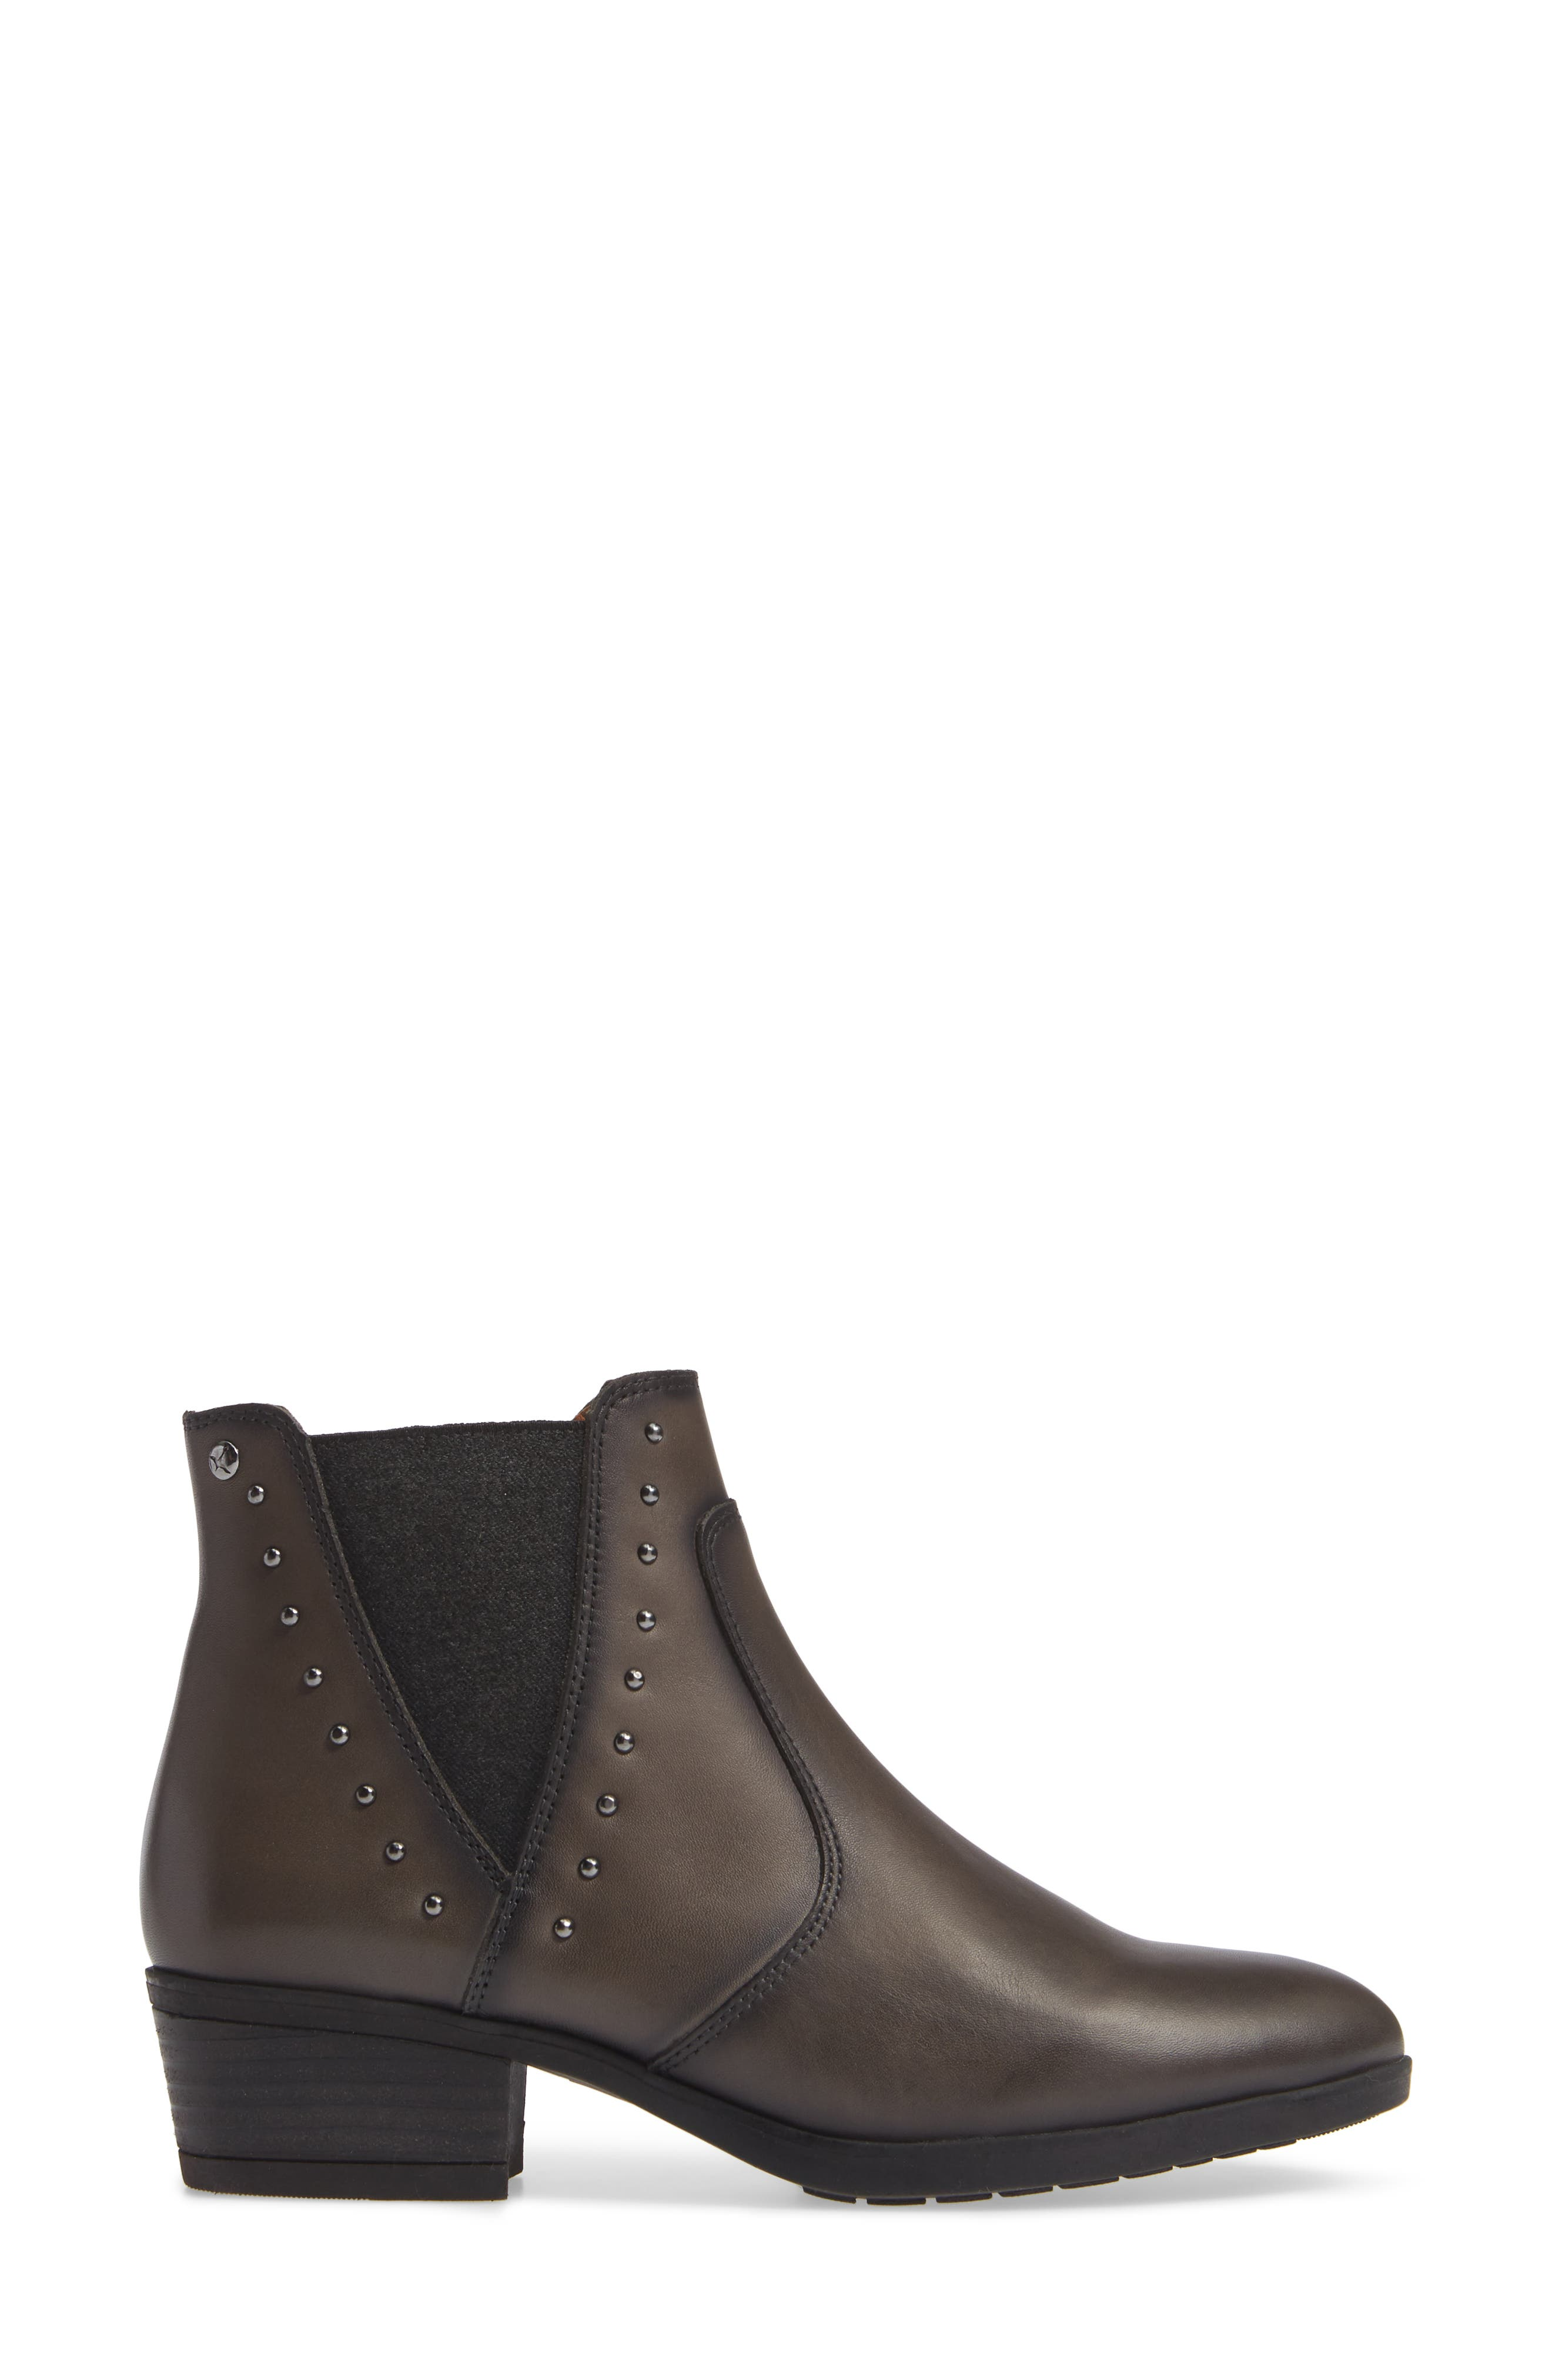 Daroca Studded Bootie,                             Alternate thumbnail 3, color,                             LEAD LEATHER